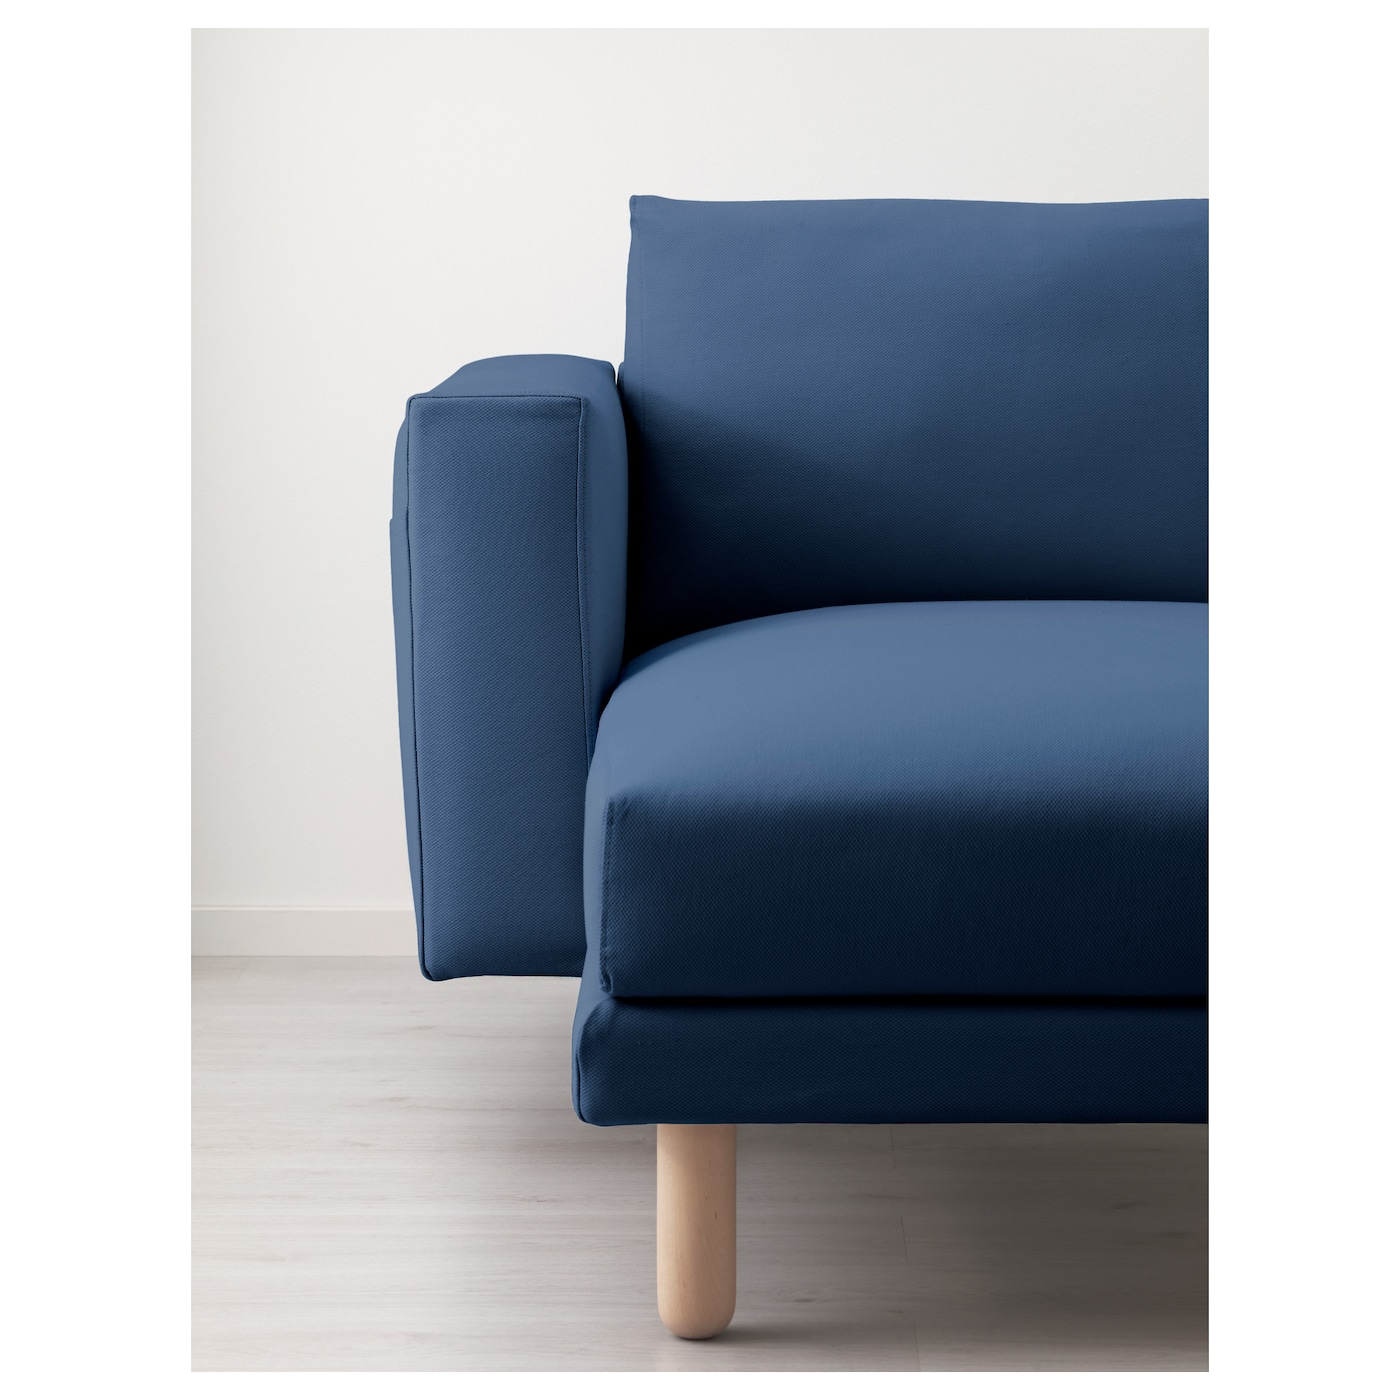 IKEA NORSBORG chaise longue 10 year guarantee. Read about the terms in the guarantee brochure.